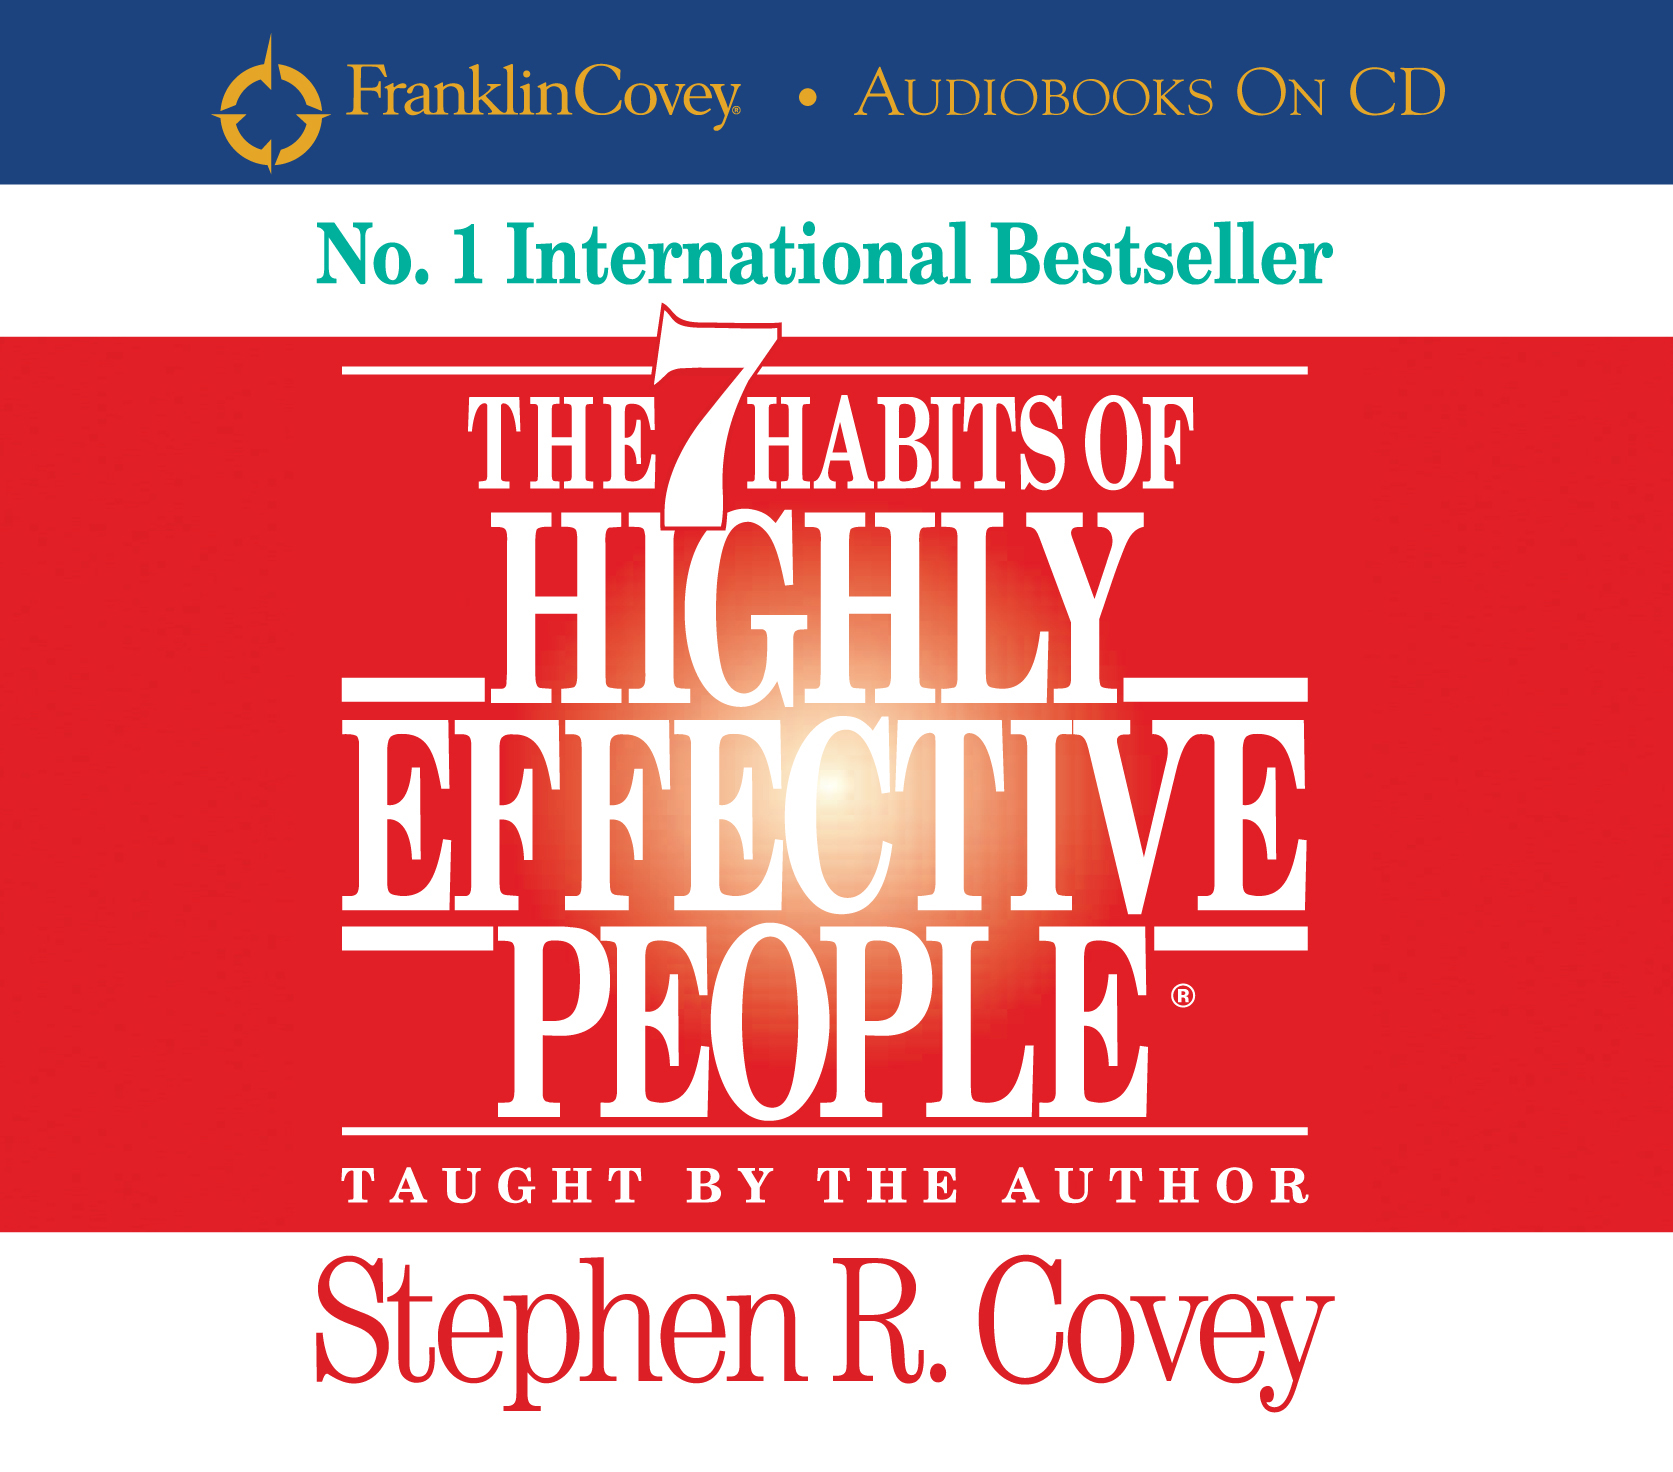 Book Cover Image Jpg The 7 Habits Of Highly Effective People